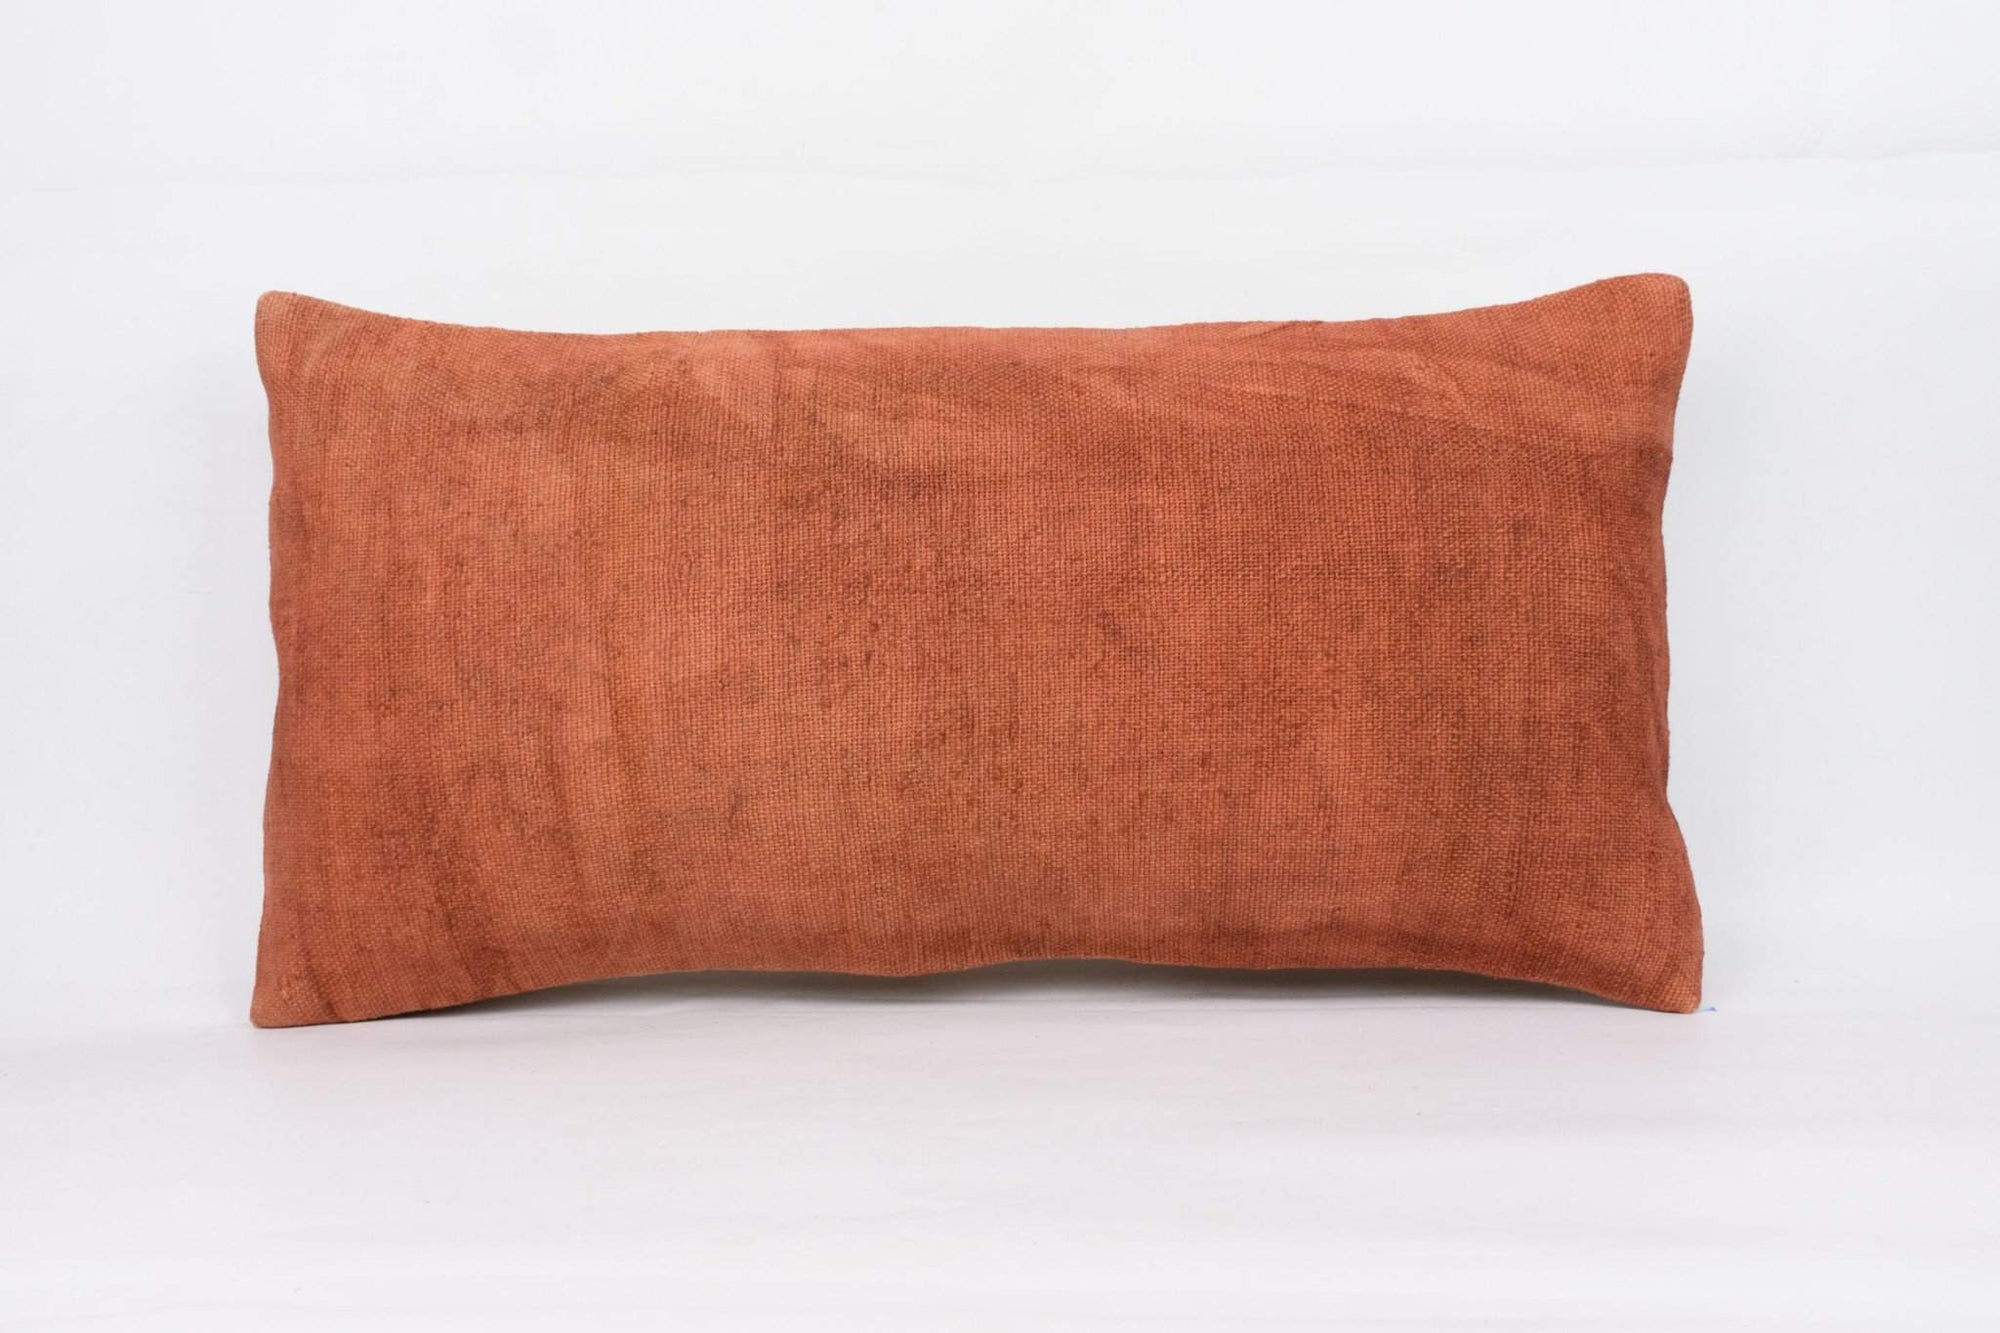 Plain Brown Kilim Pillow Cover 12x24 4188